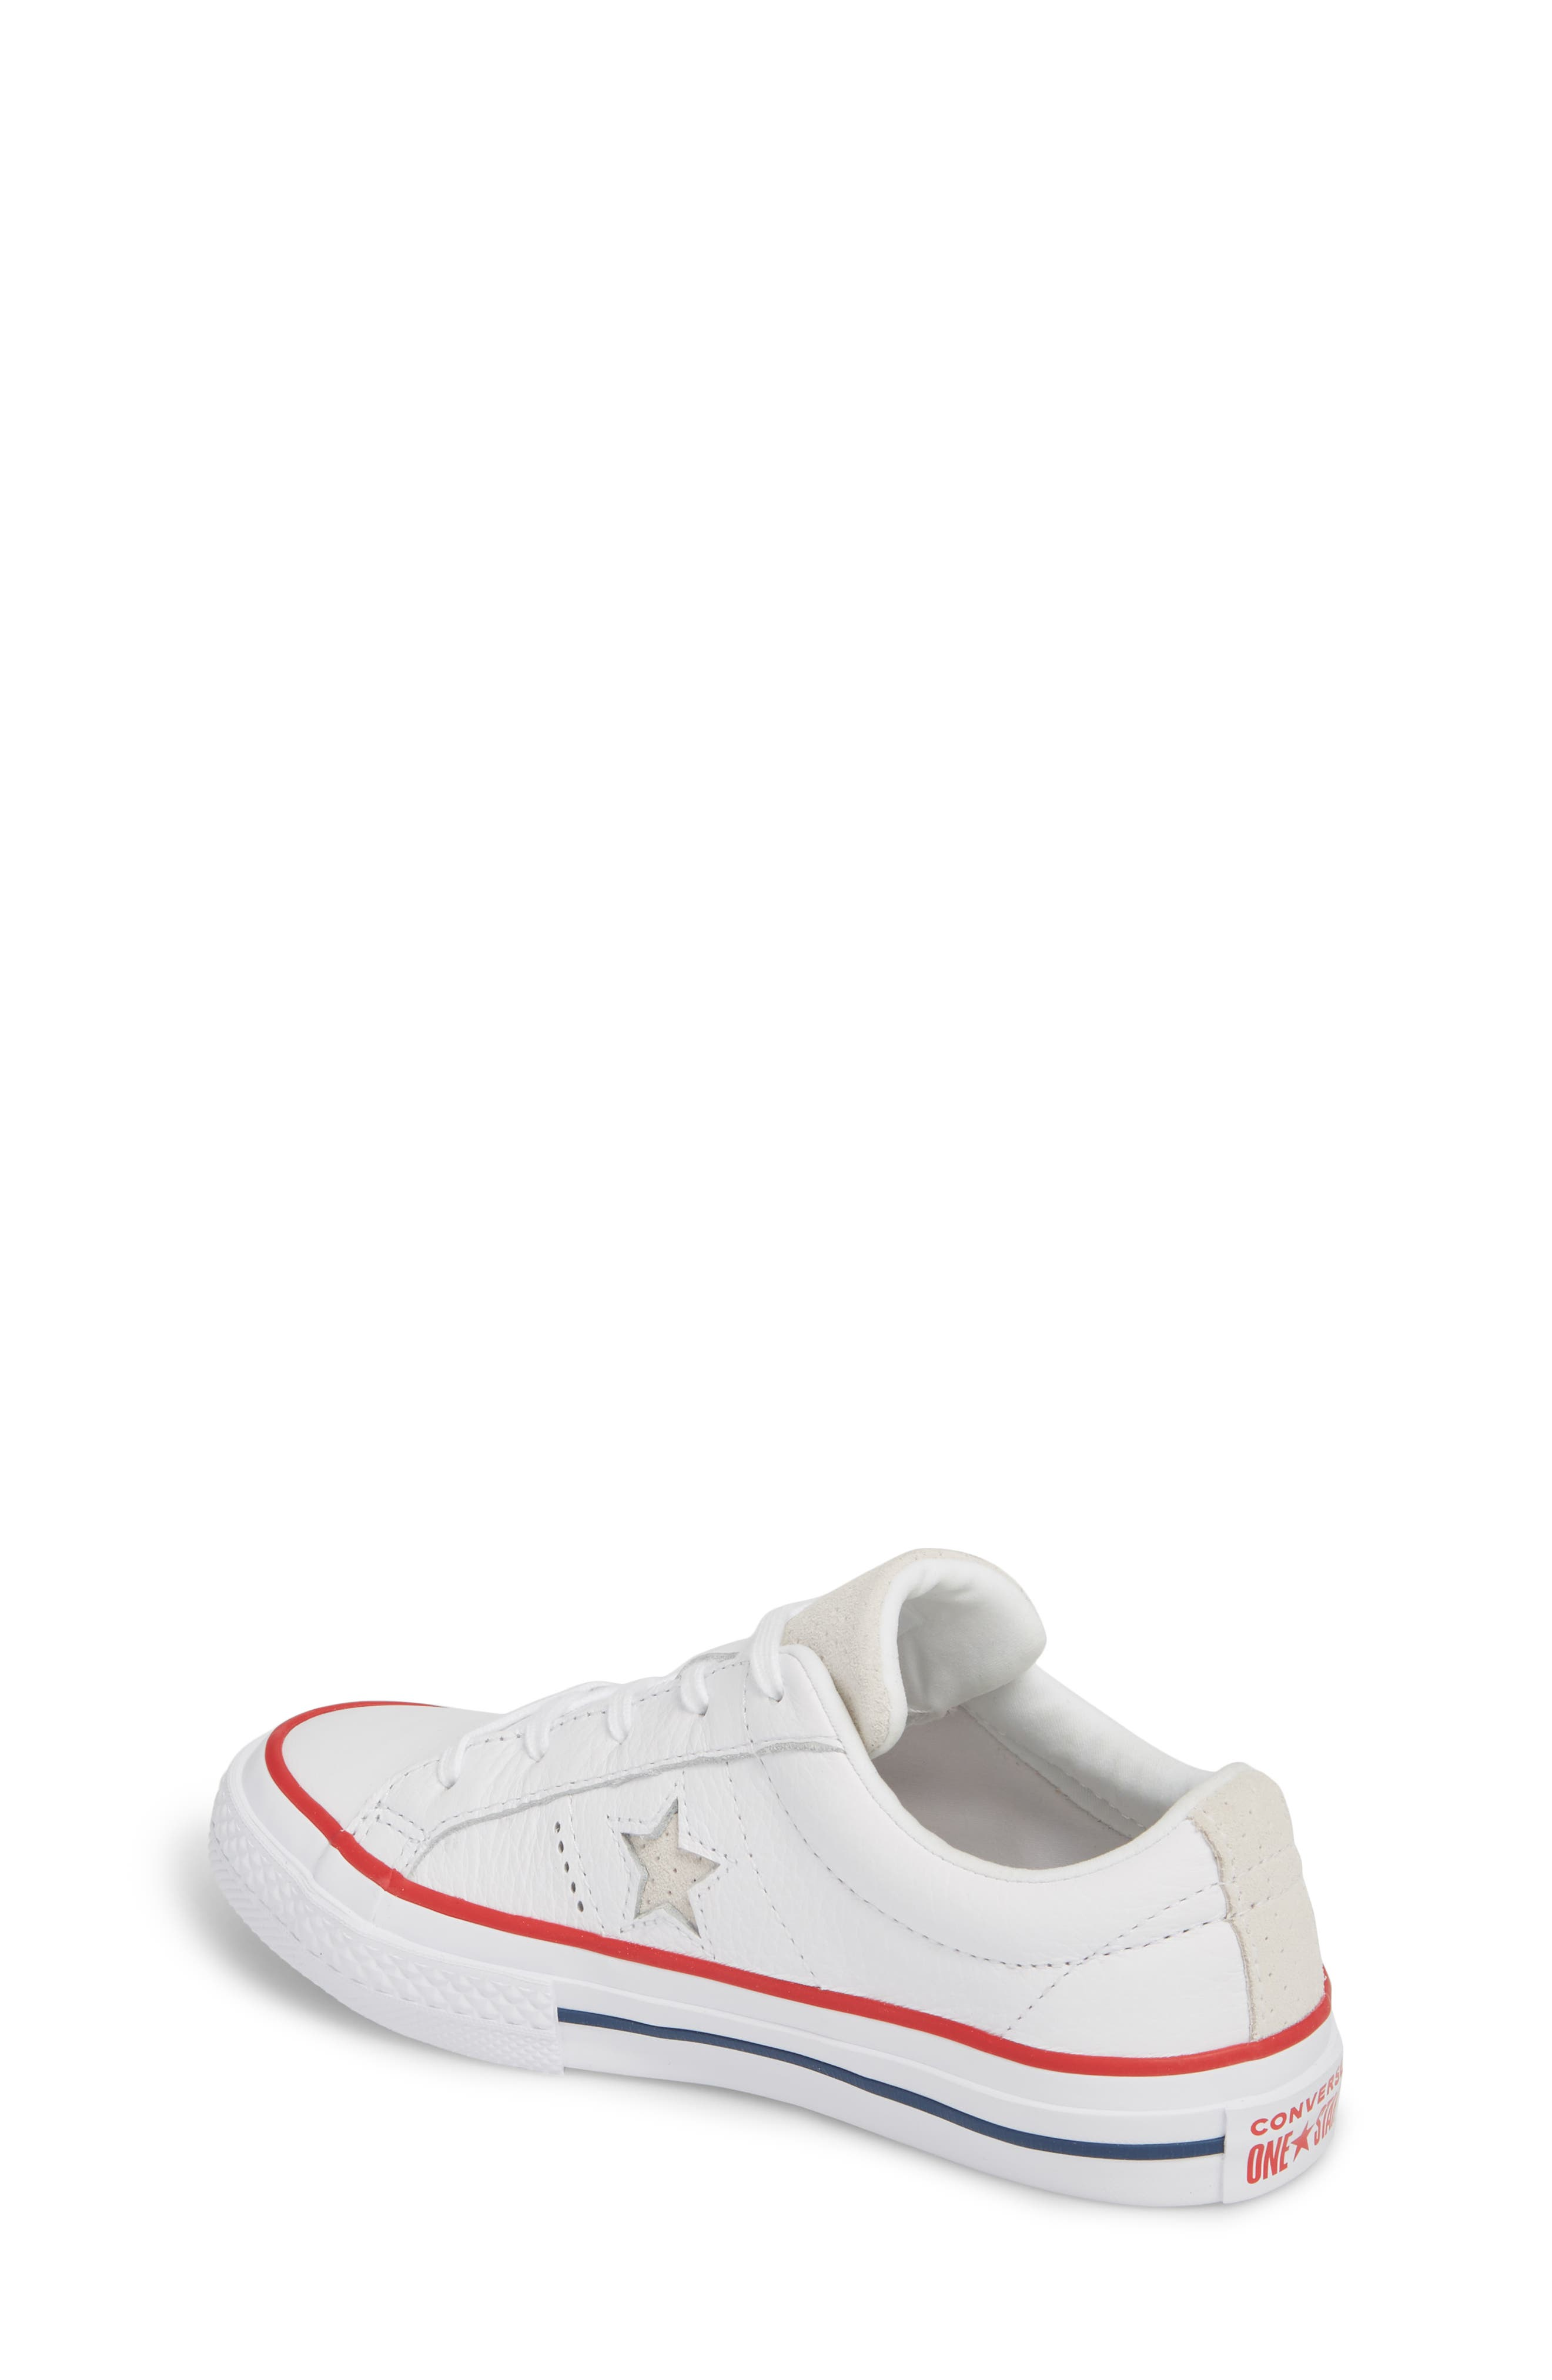 Chuck Taylor<sup>®</sup> All Star<sup>®</sup> New Heritage Oxford Sneaker,                             Alternate thumbnail 2, color,                             102